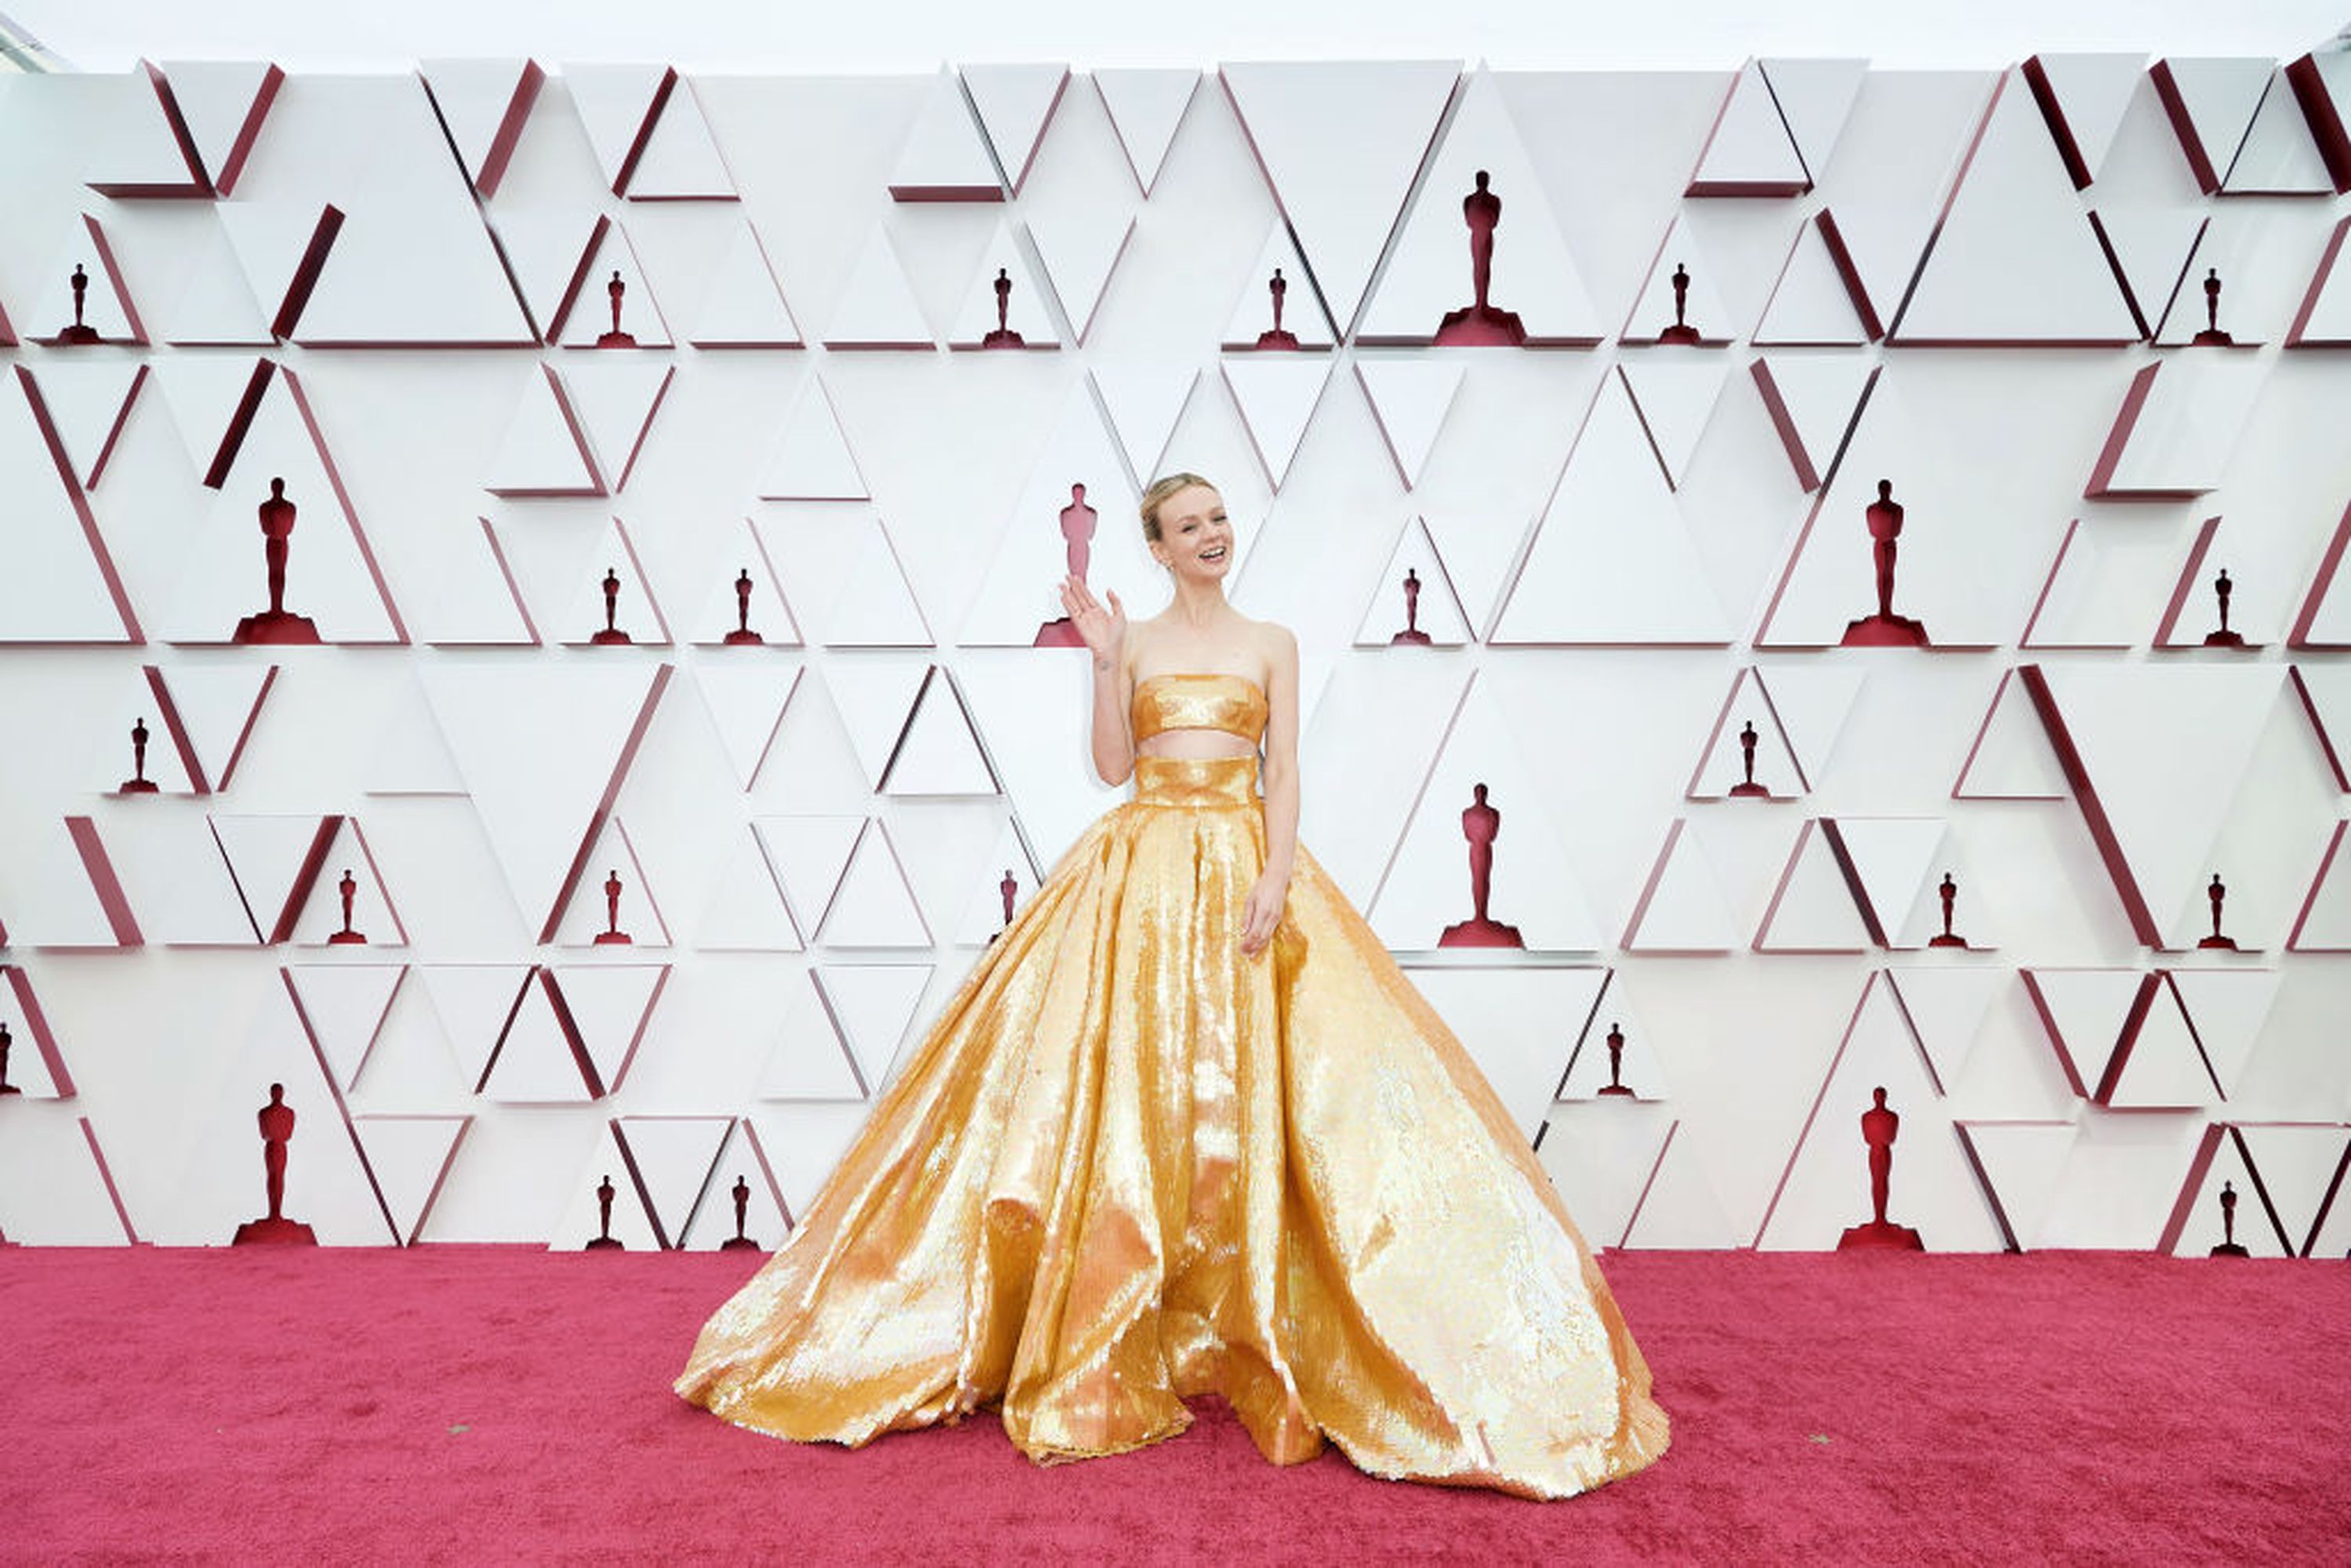 LOS ANGELES, CA - APRIL 25: (For editorial use only) In this posted photo provided by AMPAS, Carey Mulligan attends the 93rd Annual Academy Awards at Union Station on April 25, 2021 in Los Angeles, California.  (Photo by Matt Beatty / AMPAS via Getty Images)